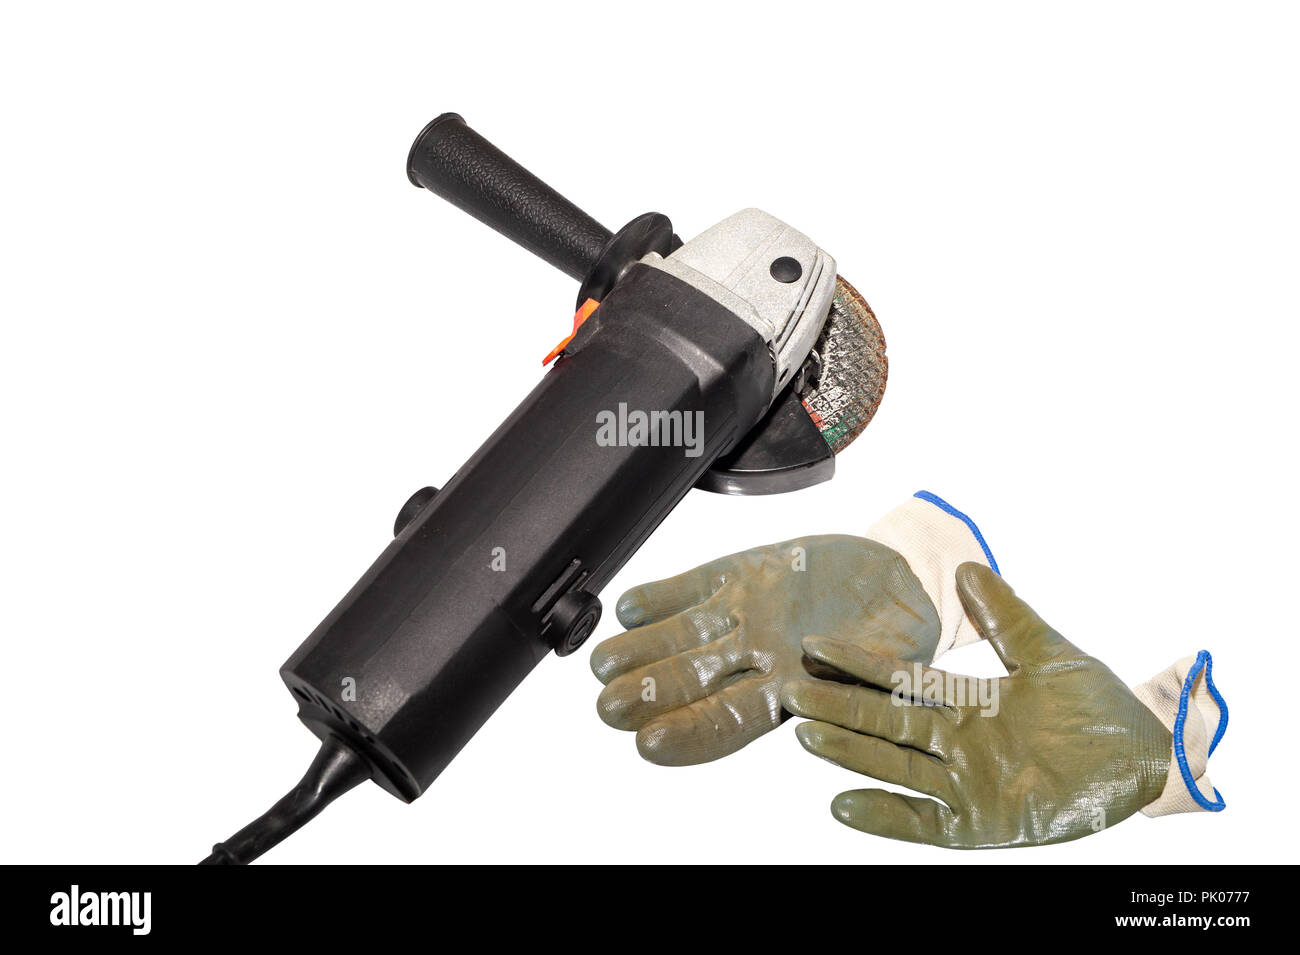 angle grinder and gloves isolated on white background - Stock Image